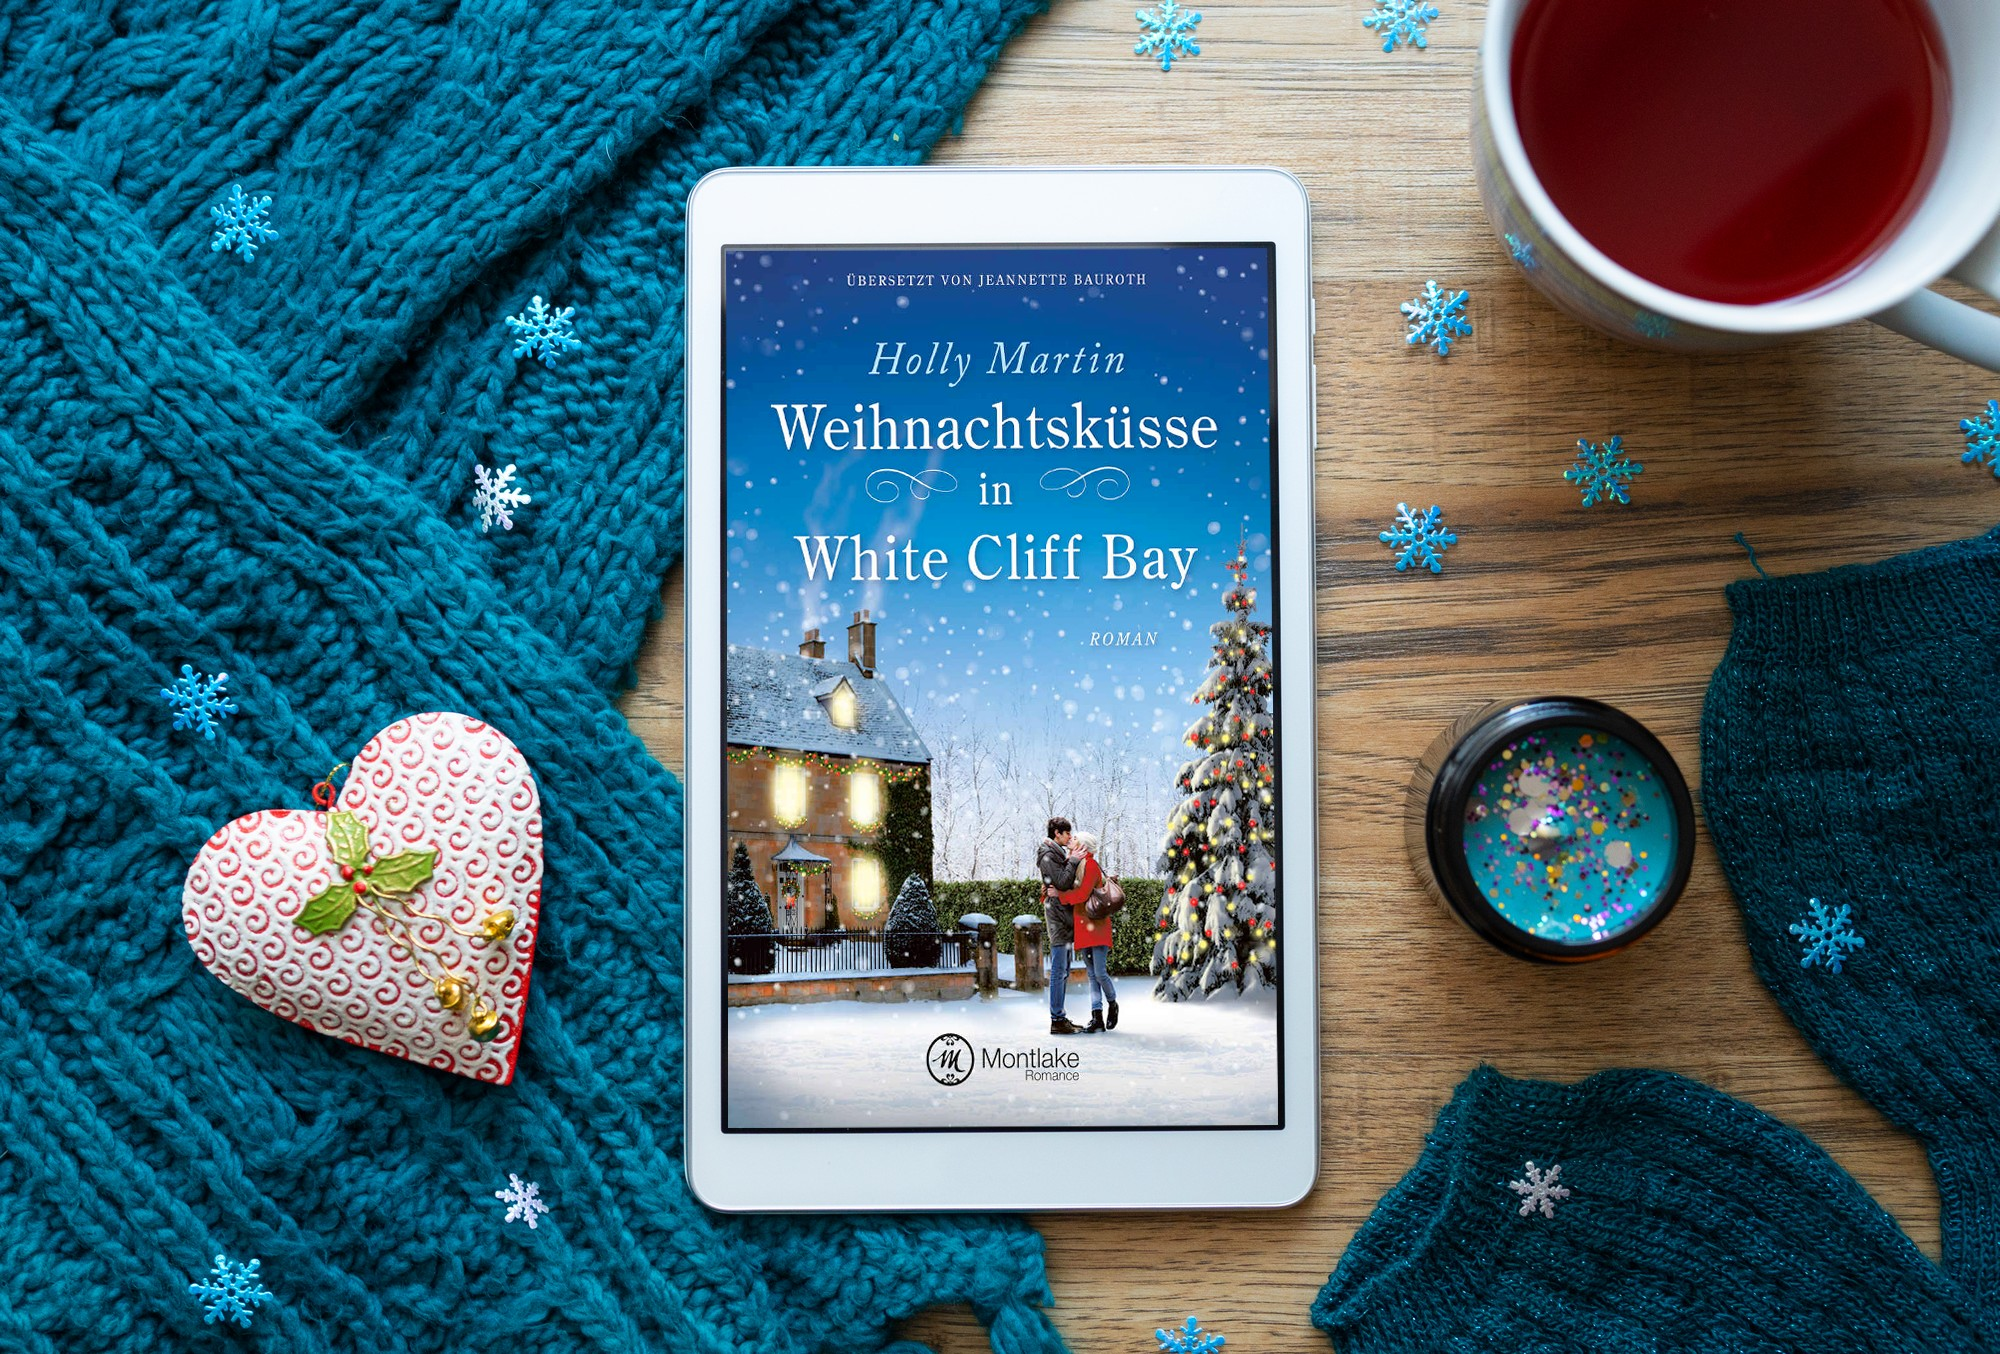 Weihnachtsküsse in White Cliff Bay – Holly Martin graphic